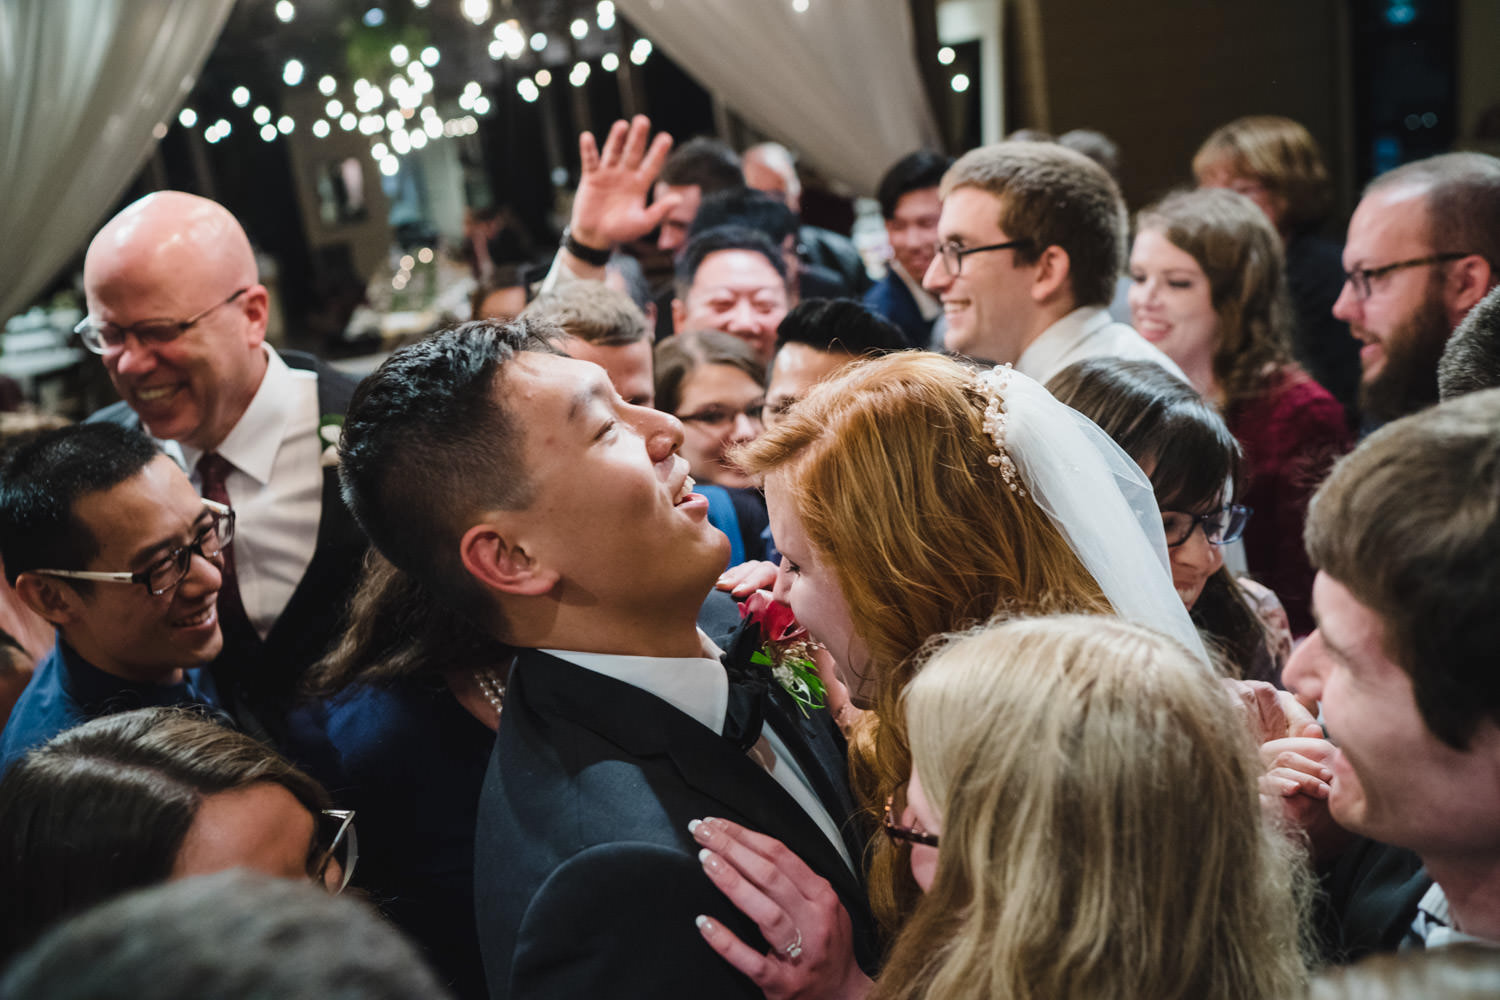 Pierpont Place wedding dance party with bride and groom center photo